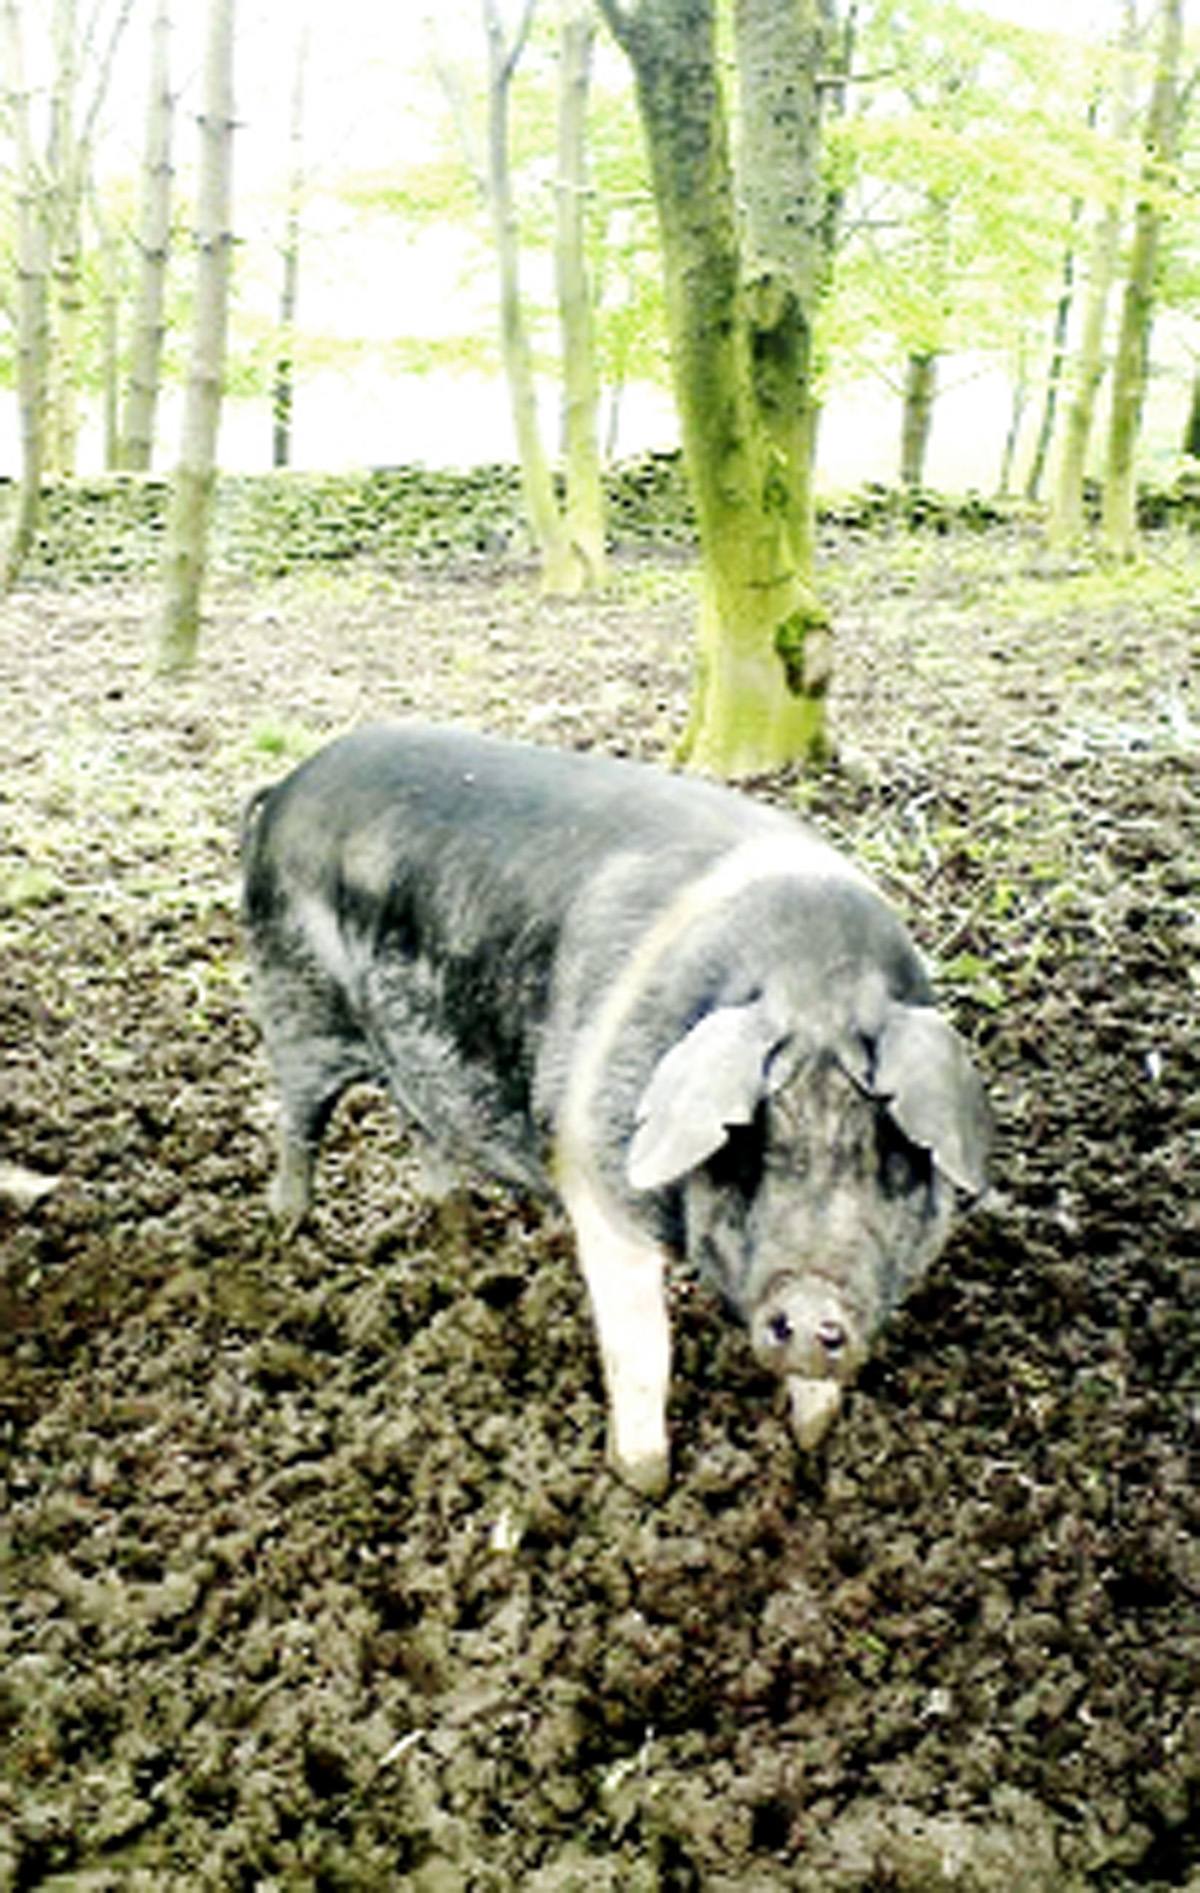 One of the runaway pigs